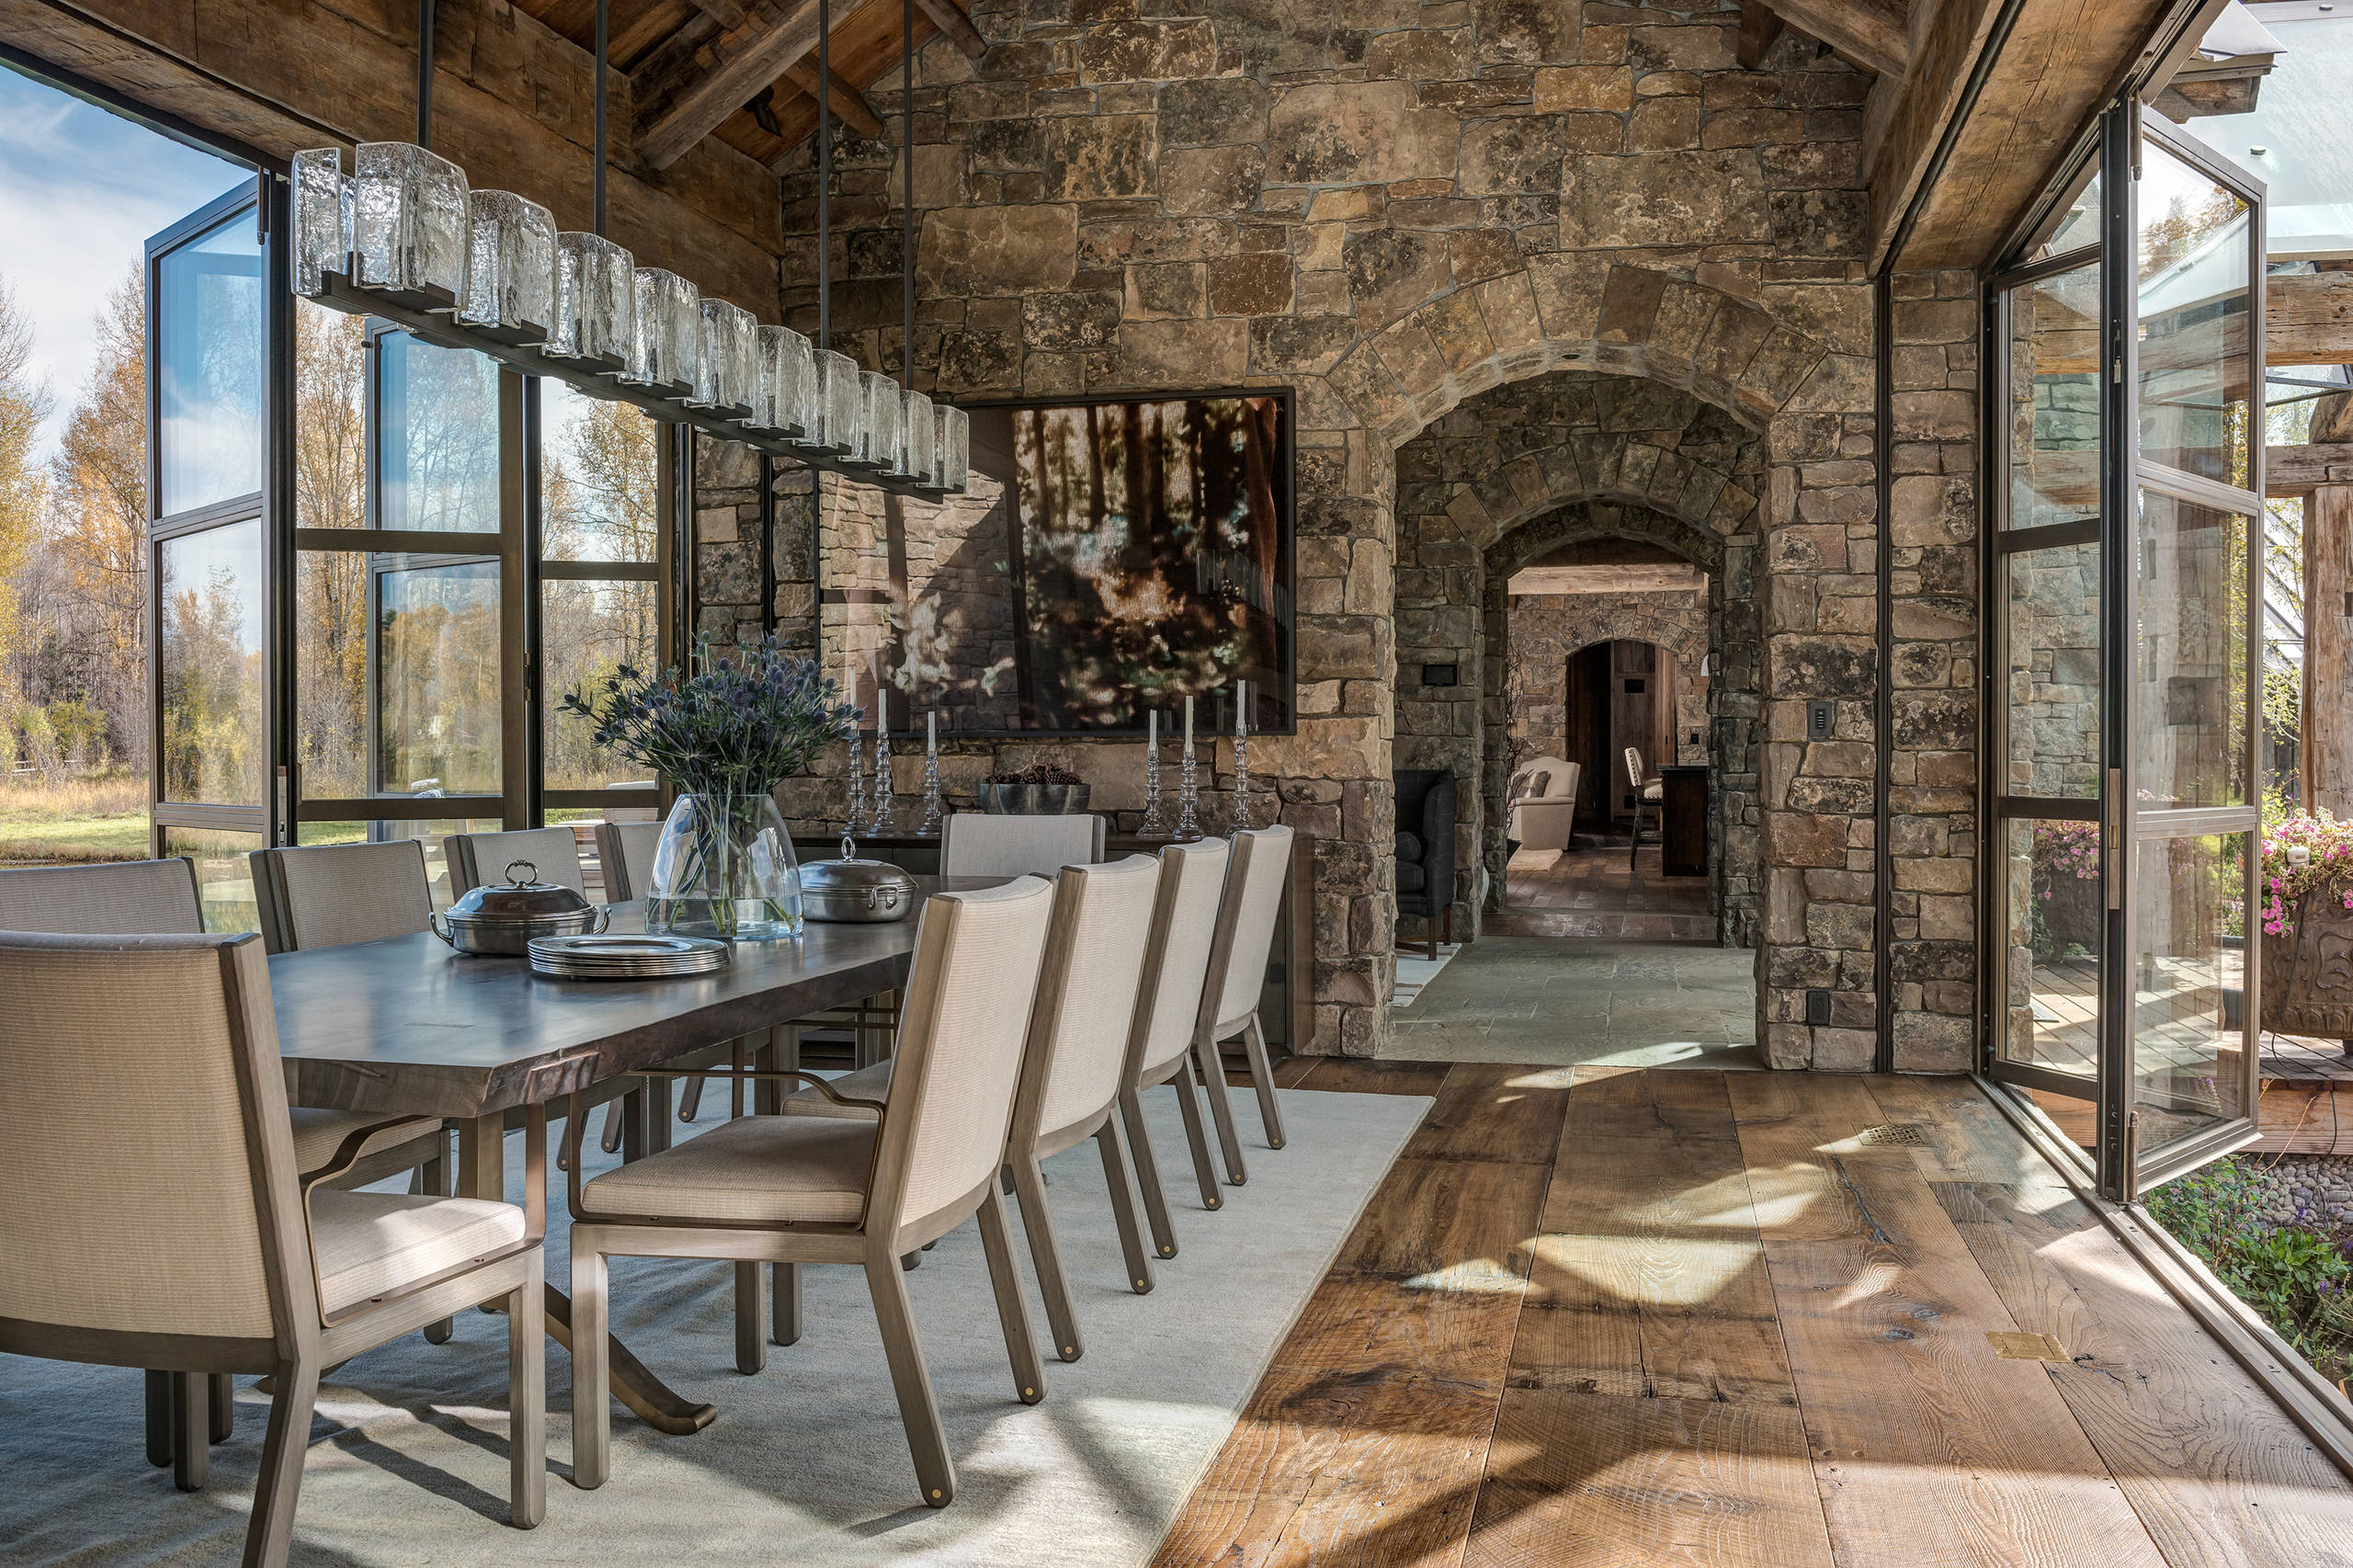 16 Majestic Rustic Dining Room Designs You Cant Miss Out